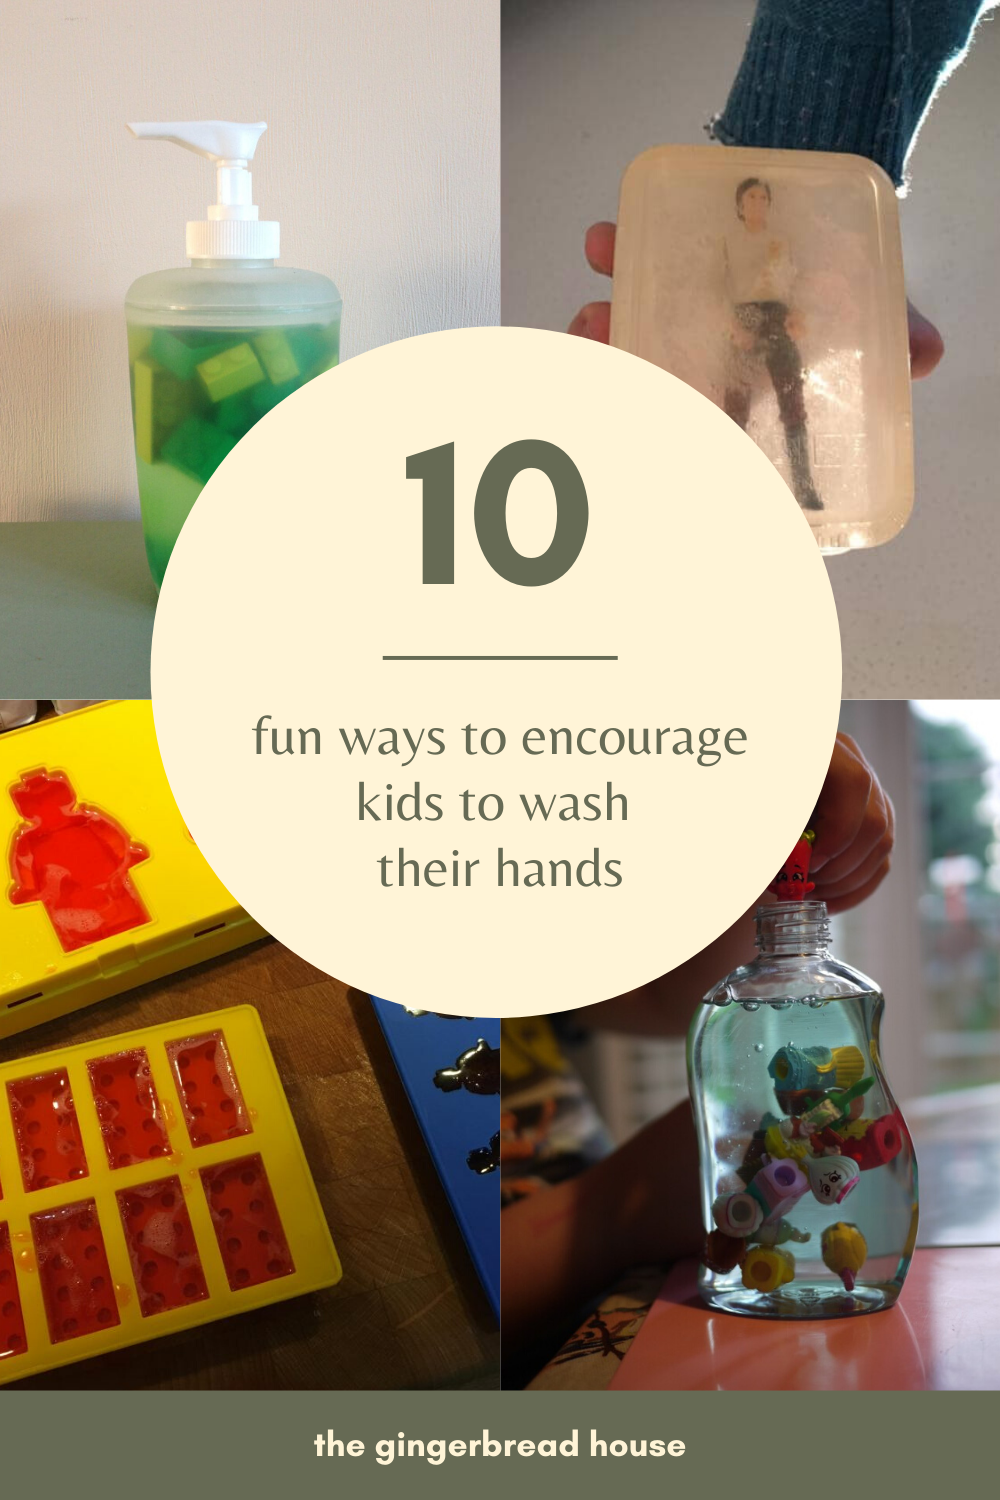 10 ways to encourage kids to wash their hands